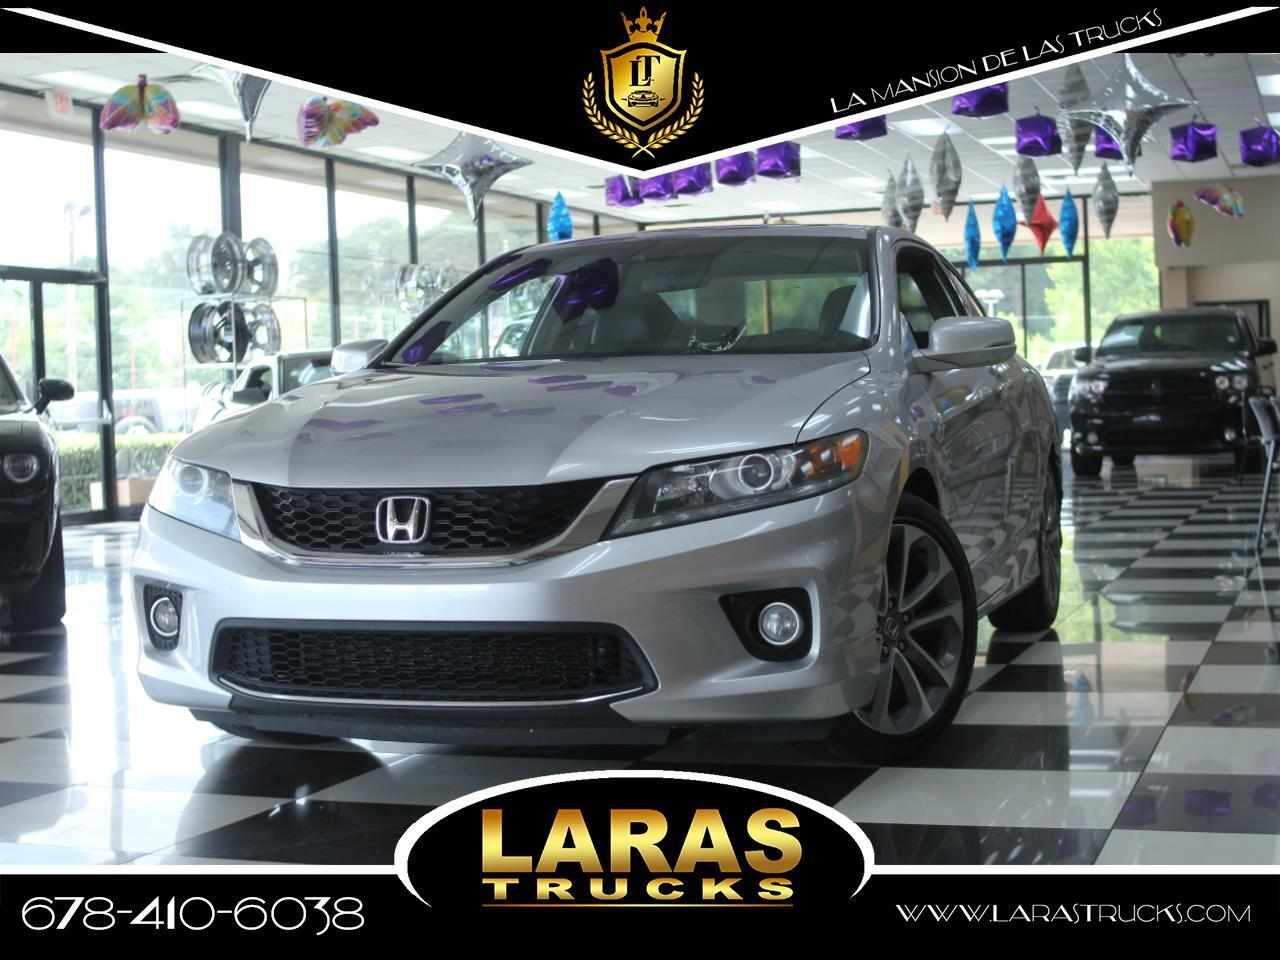 2014 Honda Accord Coupe 2dr V6 Auto EX-L